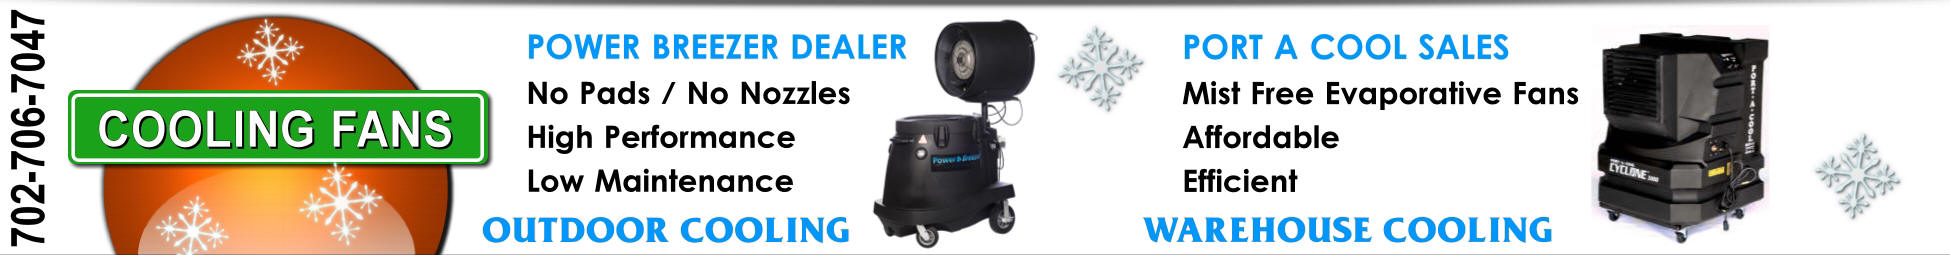 Portable Warehouse and Outdoor Cooling Fan Sales